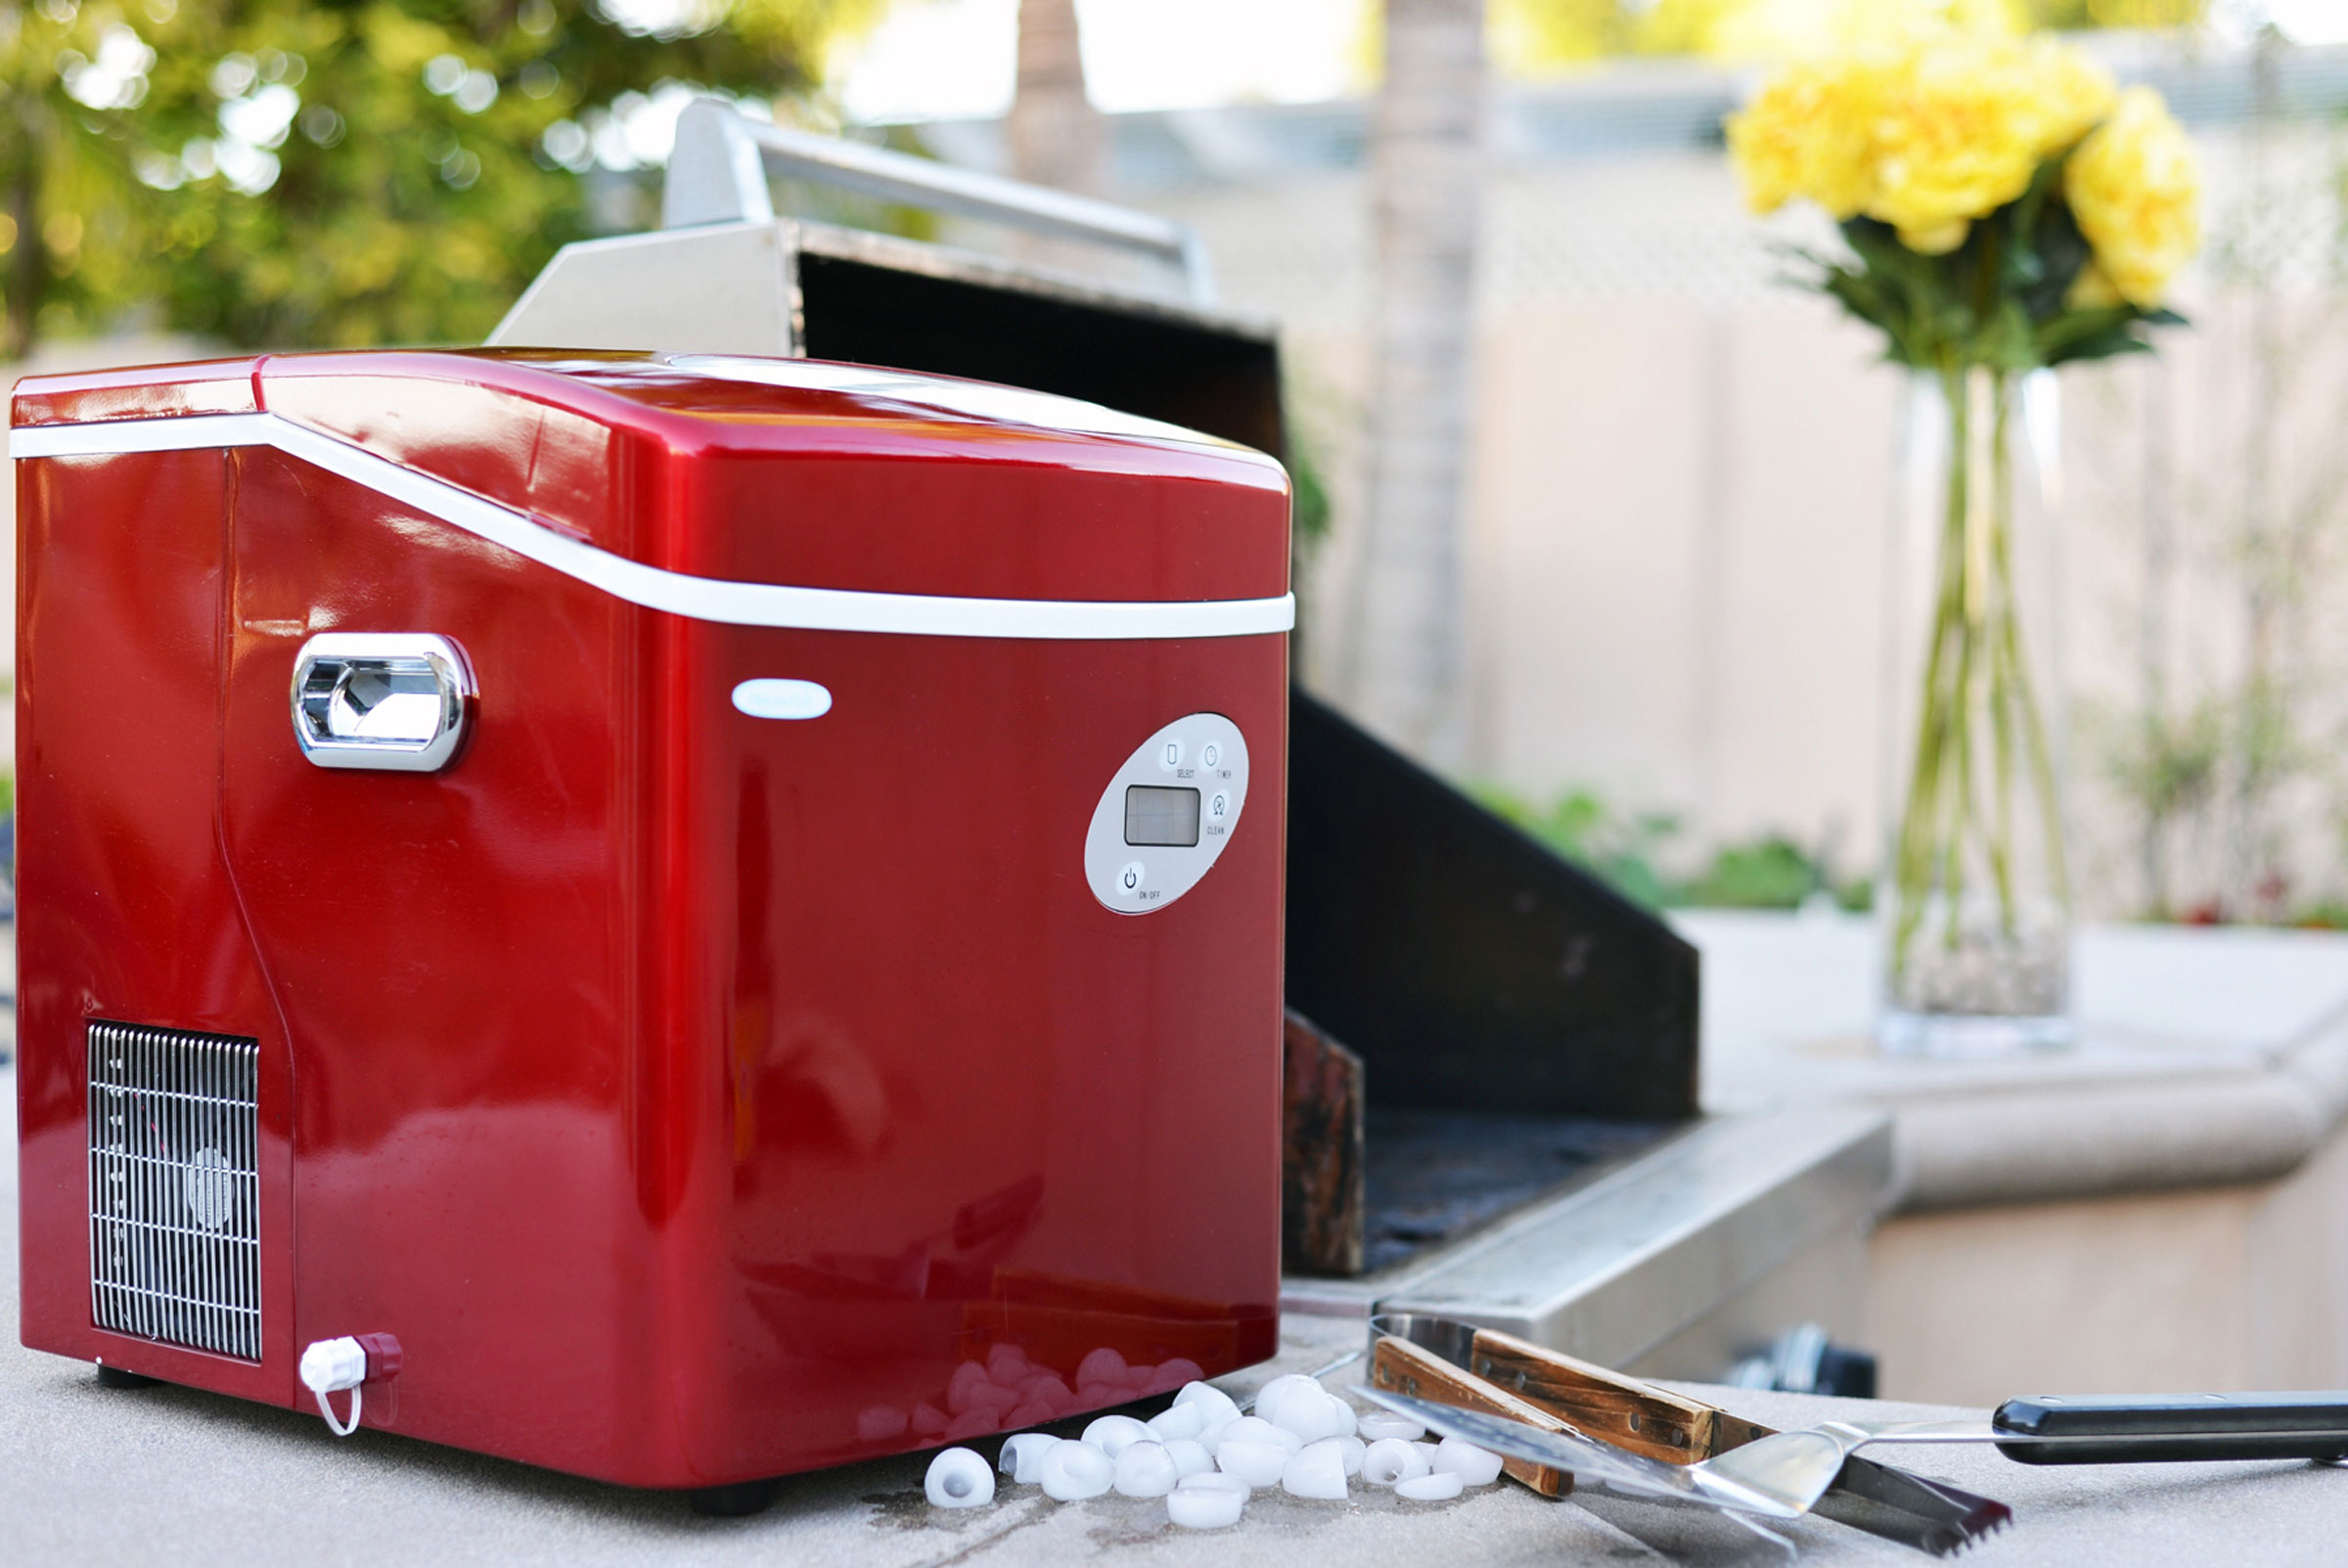 NEWAIR AI-215R Red Ice Maker, 50 lbs per day